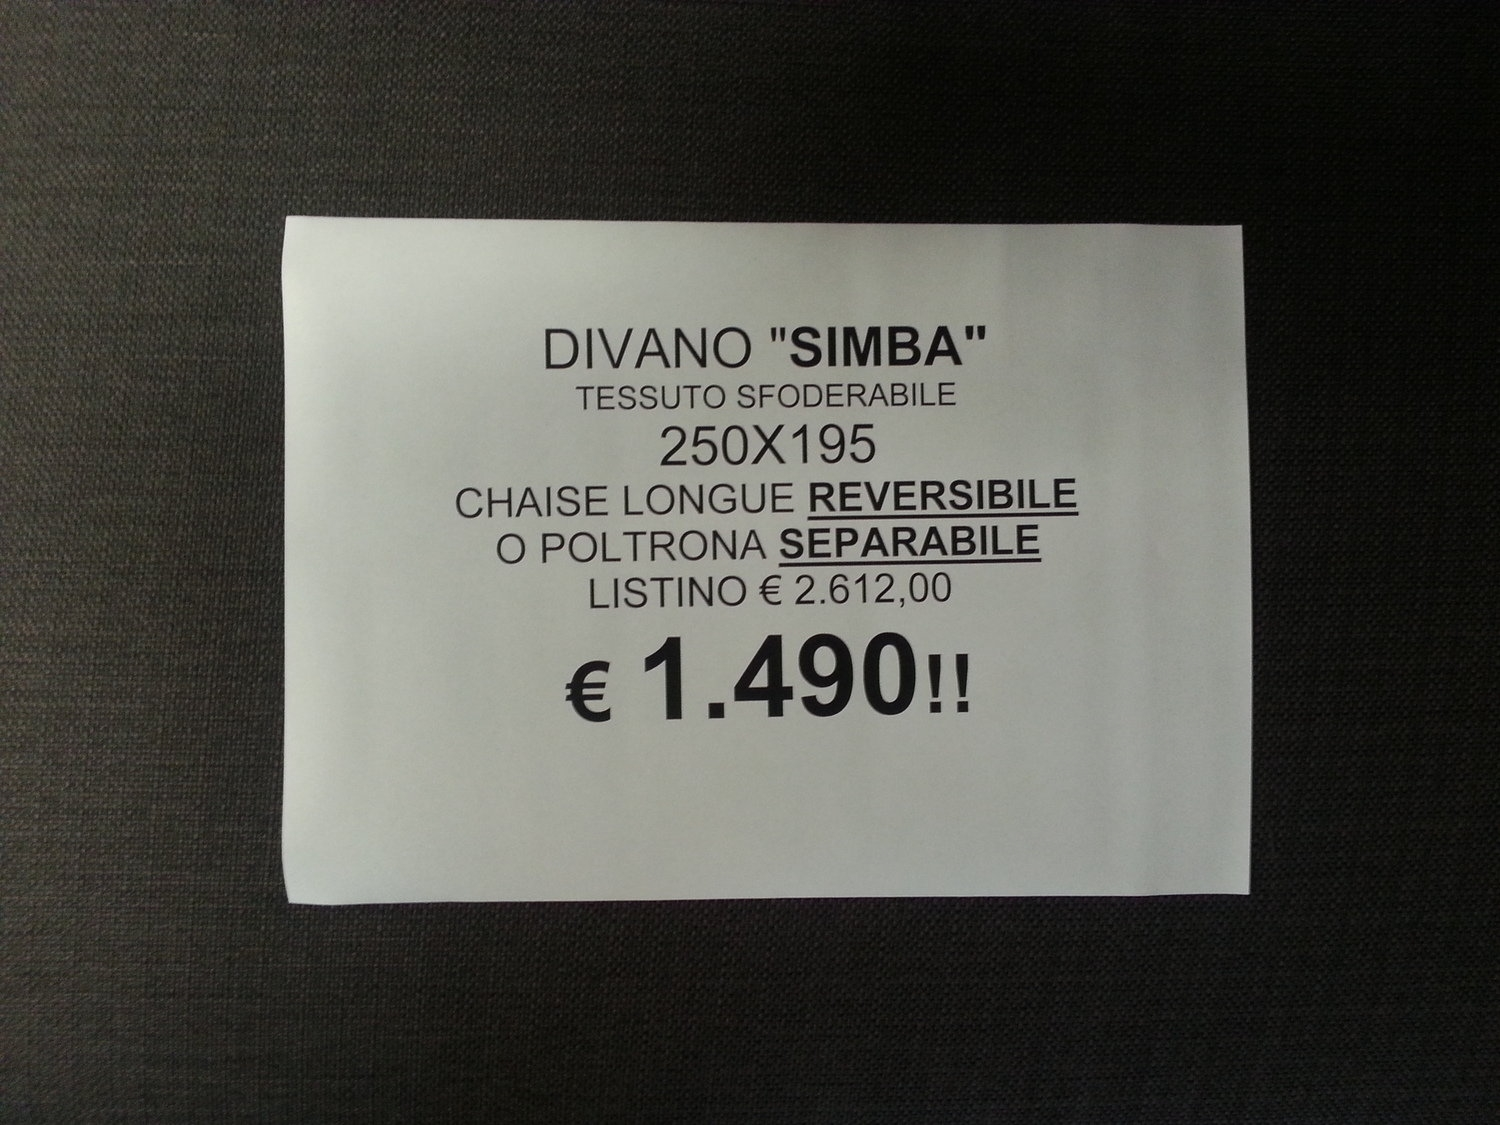 Divano chaiselongue 1.490 euro